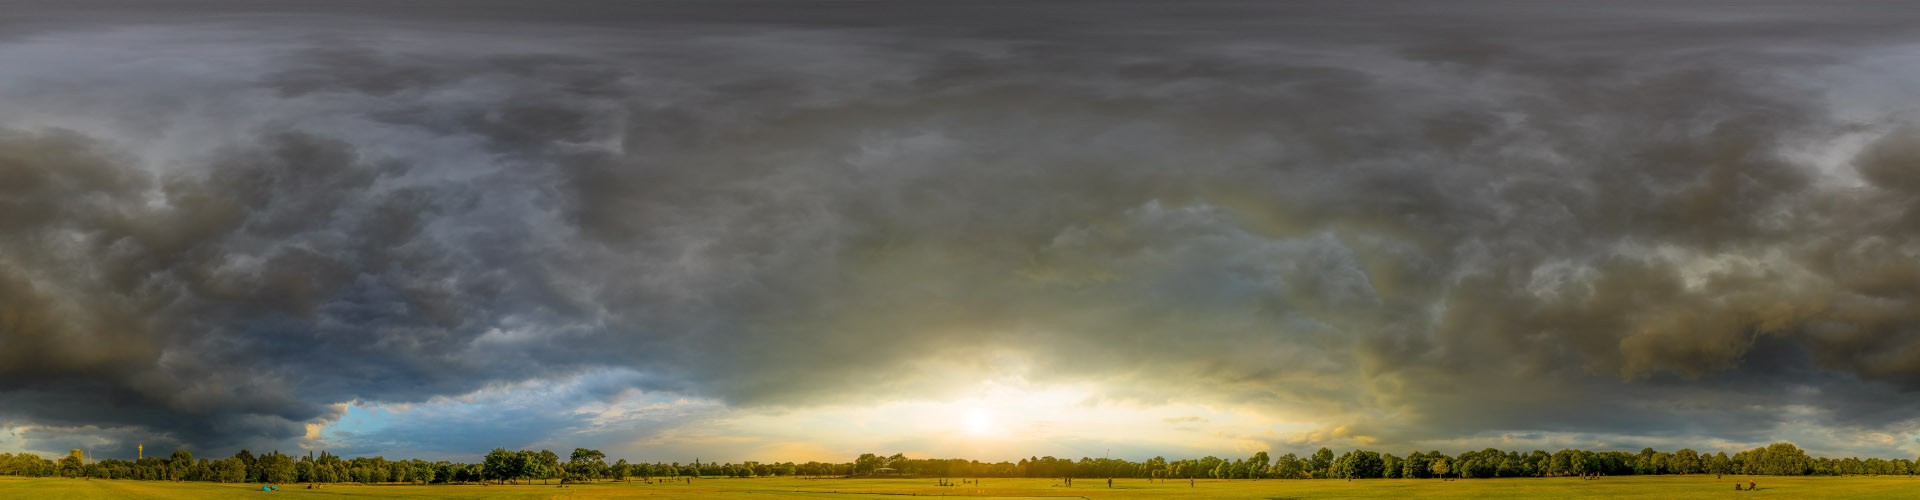 Dramatic Stormy Sunset 9142 (30k) HDRI